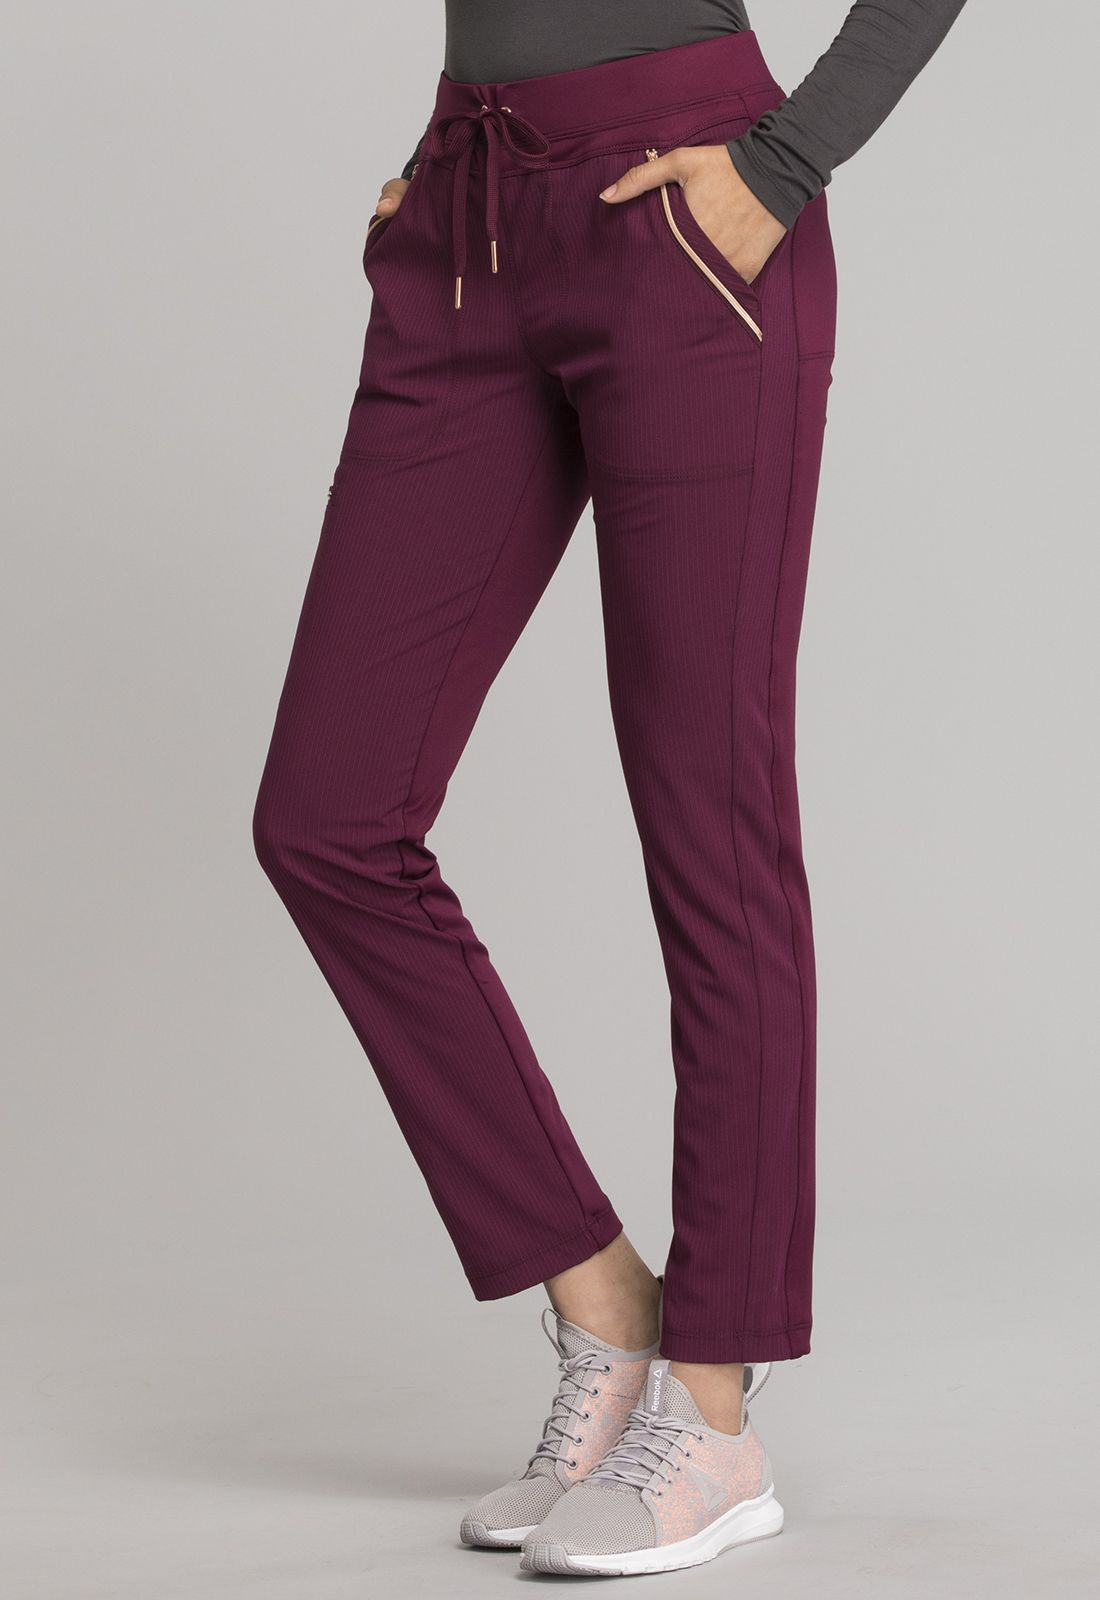 https://medcloth.by/images/stories/virtuemart/product/cherokee-ck055-wine-2.jpg